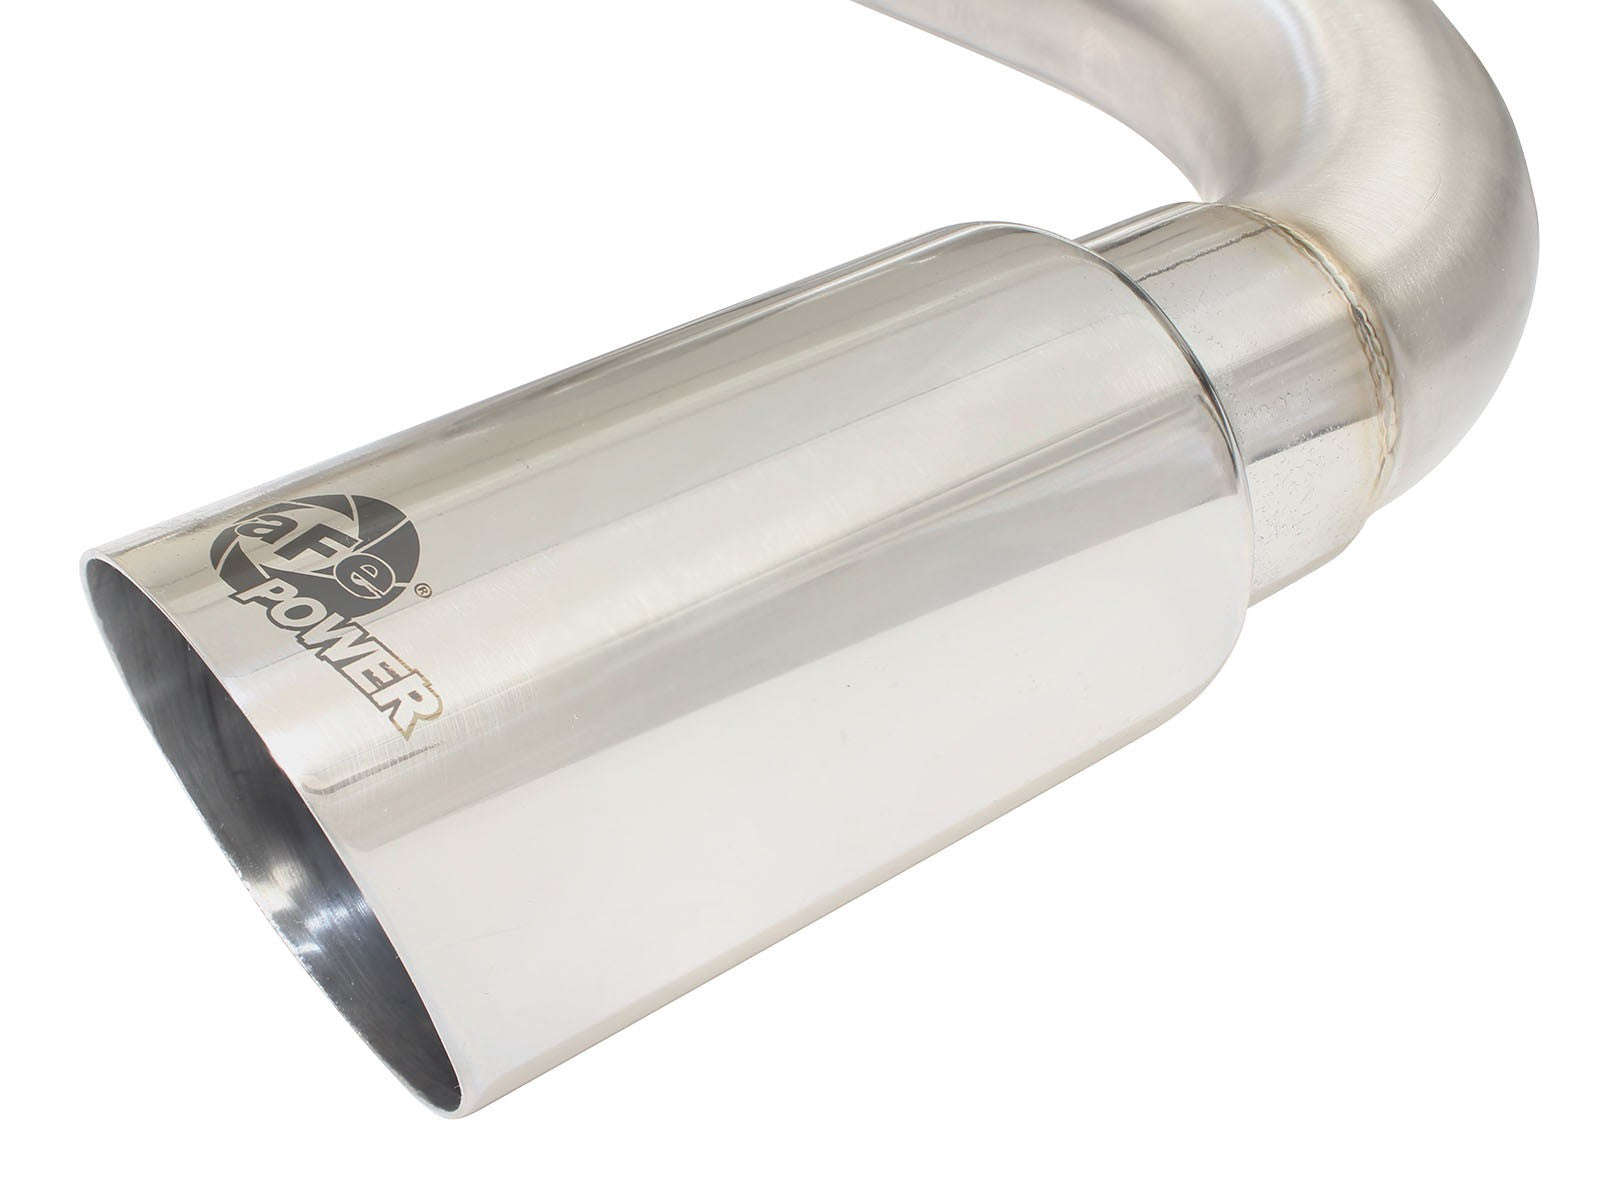 aFe POWER F30 / F32 MACH Force-Xp Cat-Back Exhaust System - Bimmer Performance Center